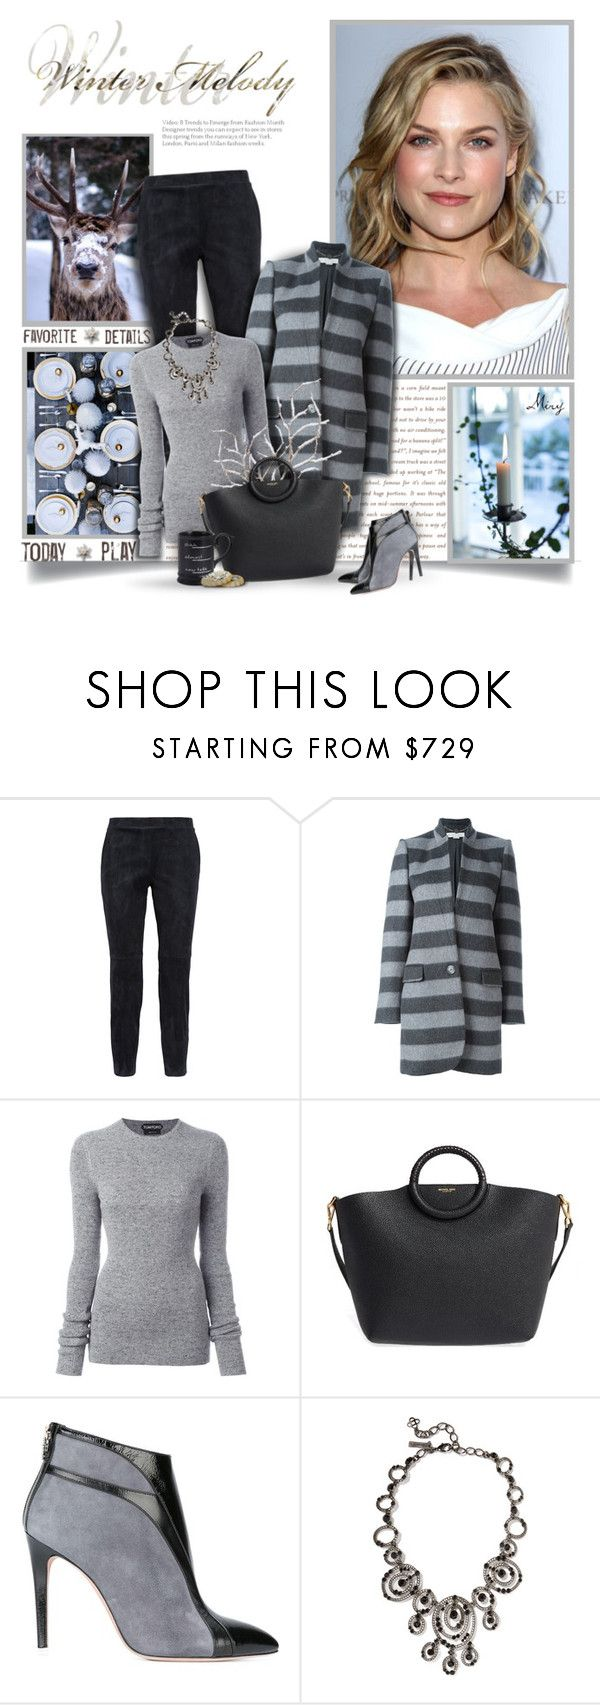 """""""Keep Yourself Warm"""" by thewondersoffashion ❤ liked on Polyvore featuring Theory, STELLA McCARTNEY, Tom Ford, Michael Kors, Francesca Mambrini, Oscar de la Renta and Pier 1 Imports"""